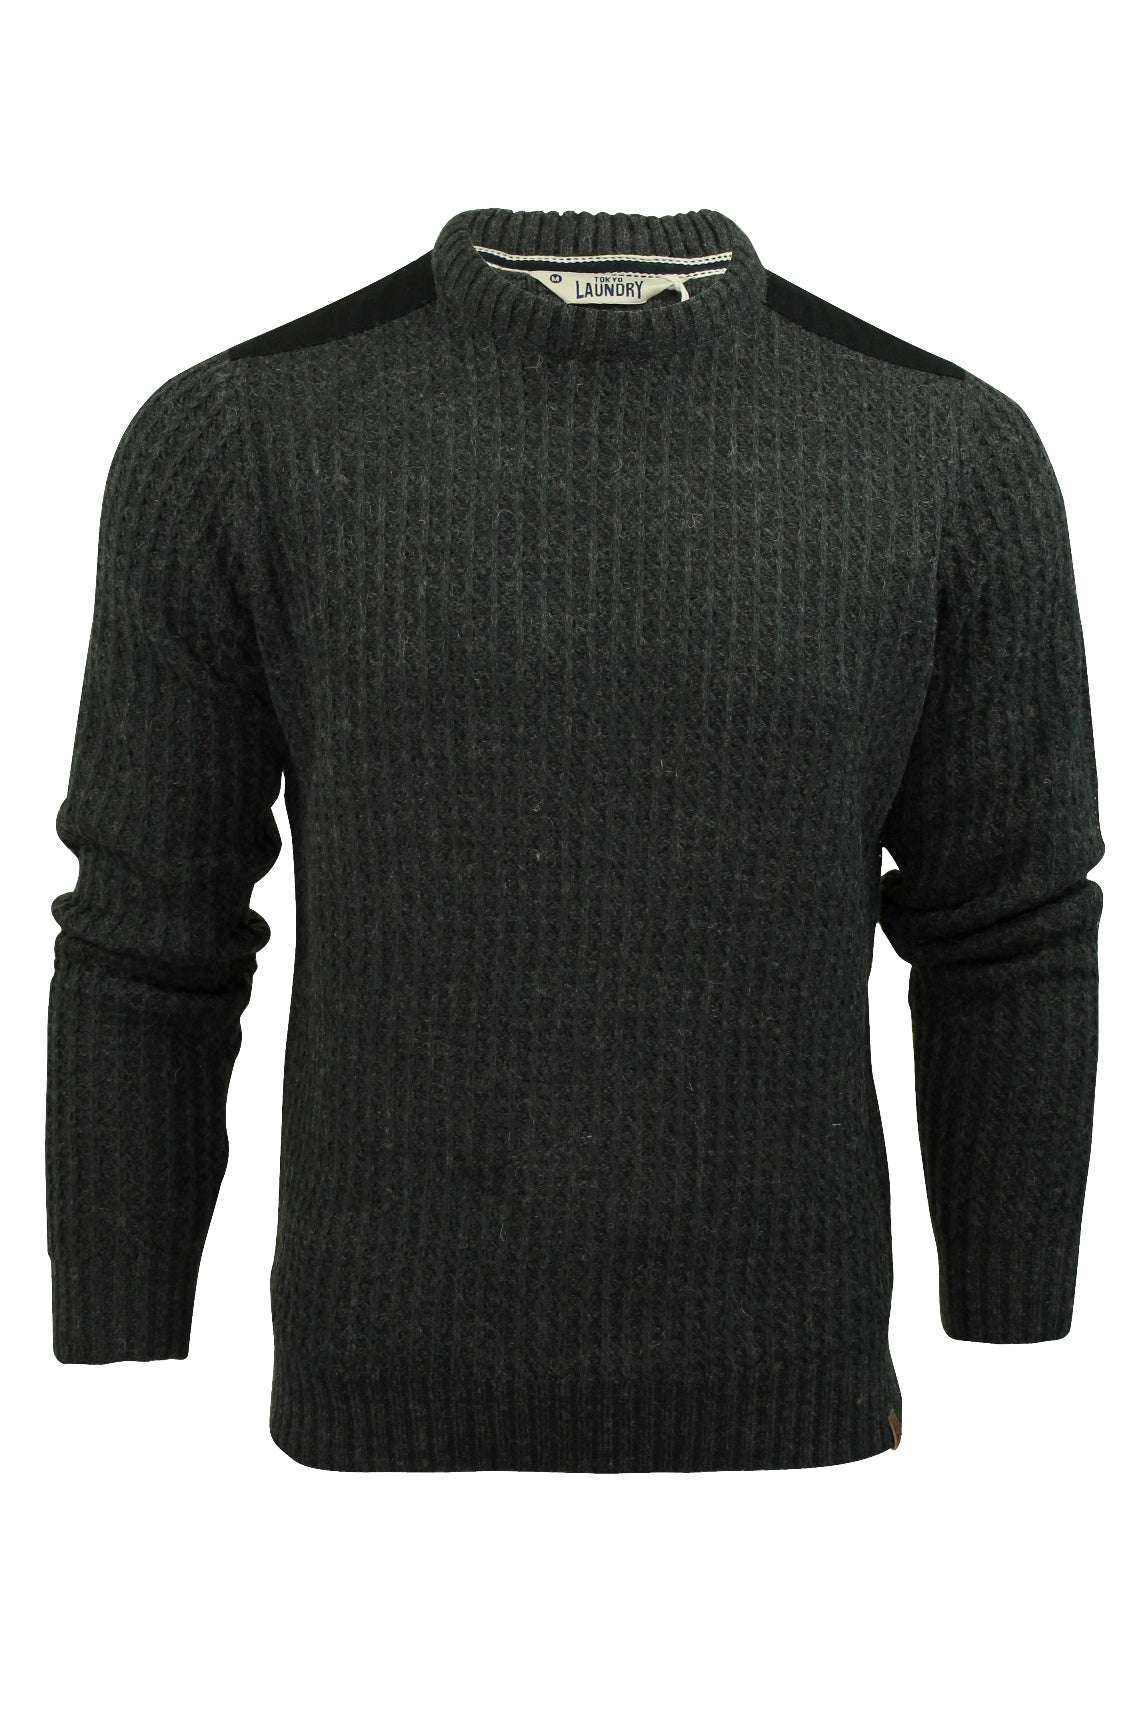 Mens Jumper by Tokyo Laundry 'Brockville' Crew Neck-Main Image